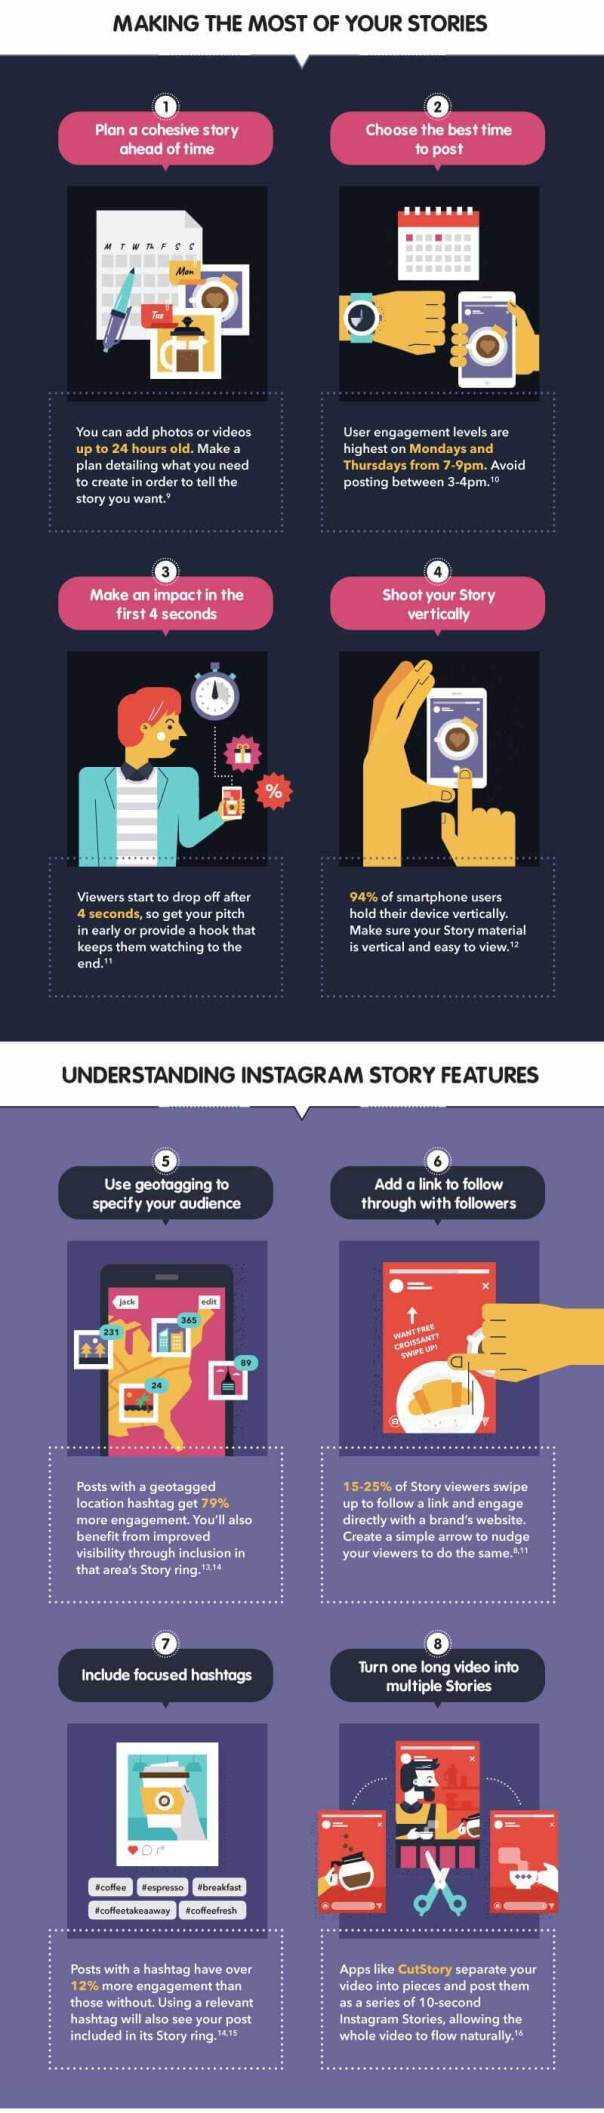 A-Guide-to-Instagram-Stories-[Infographic]_02